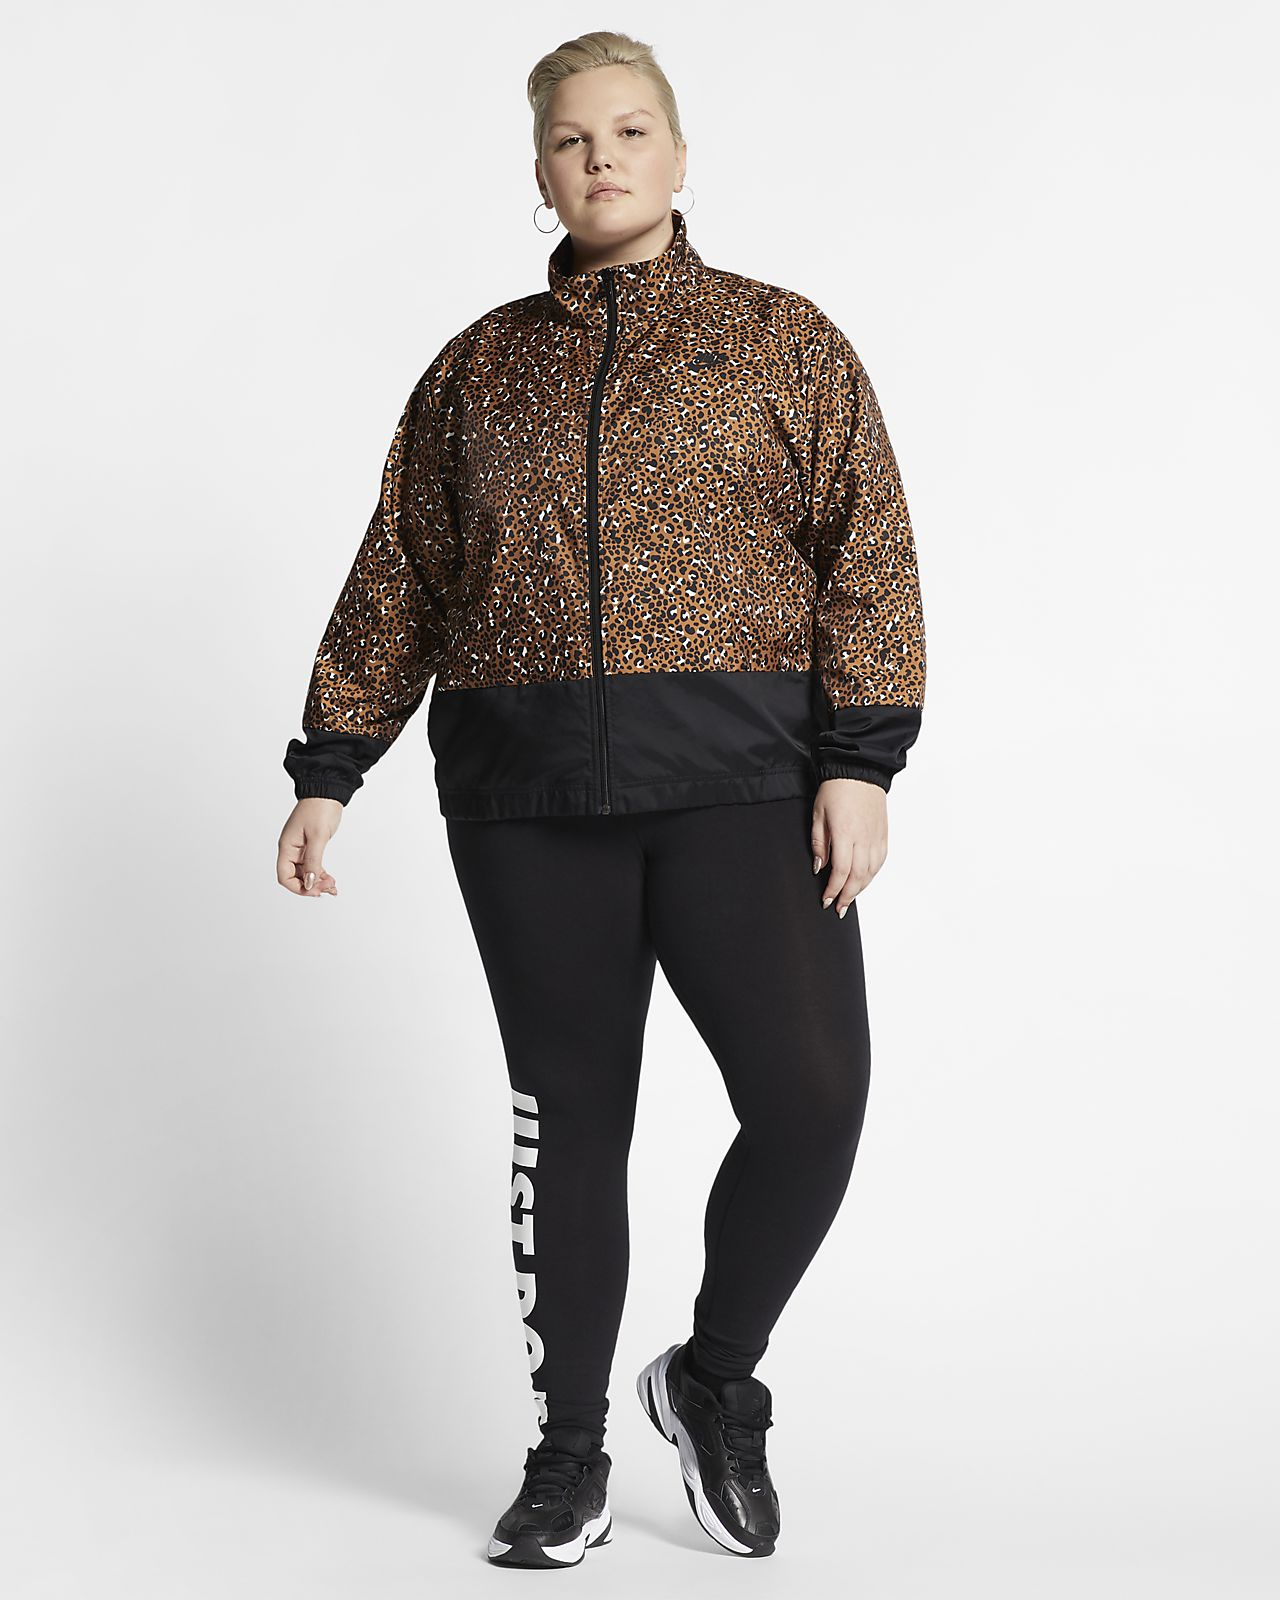 Nike Sportswear Animal Print Women's Woven Jacket (Plus Size)